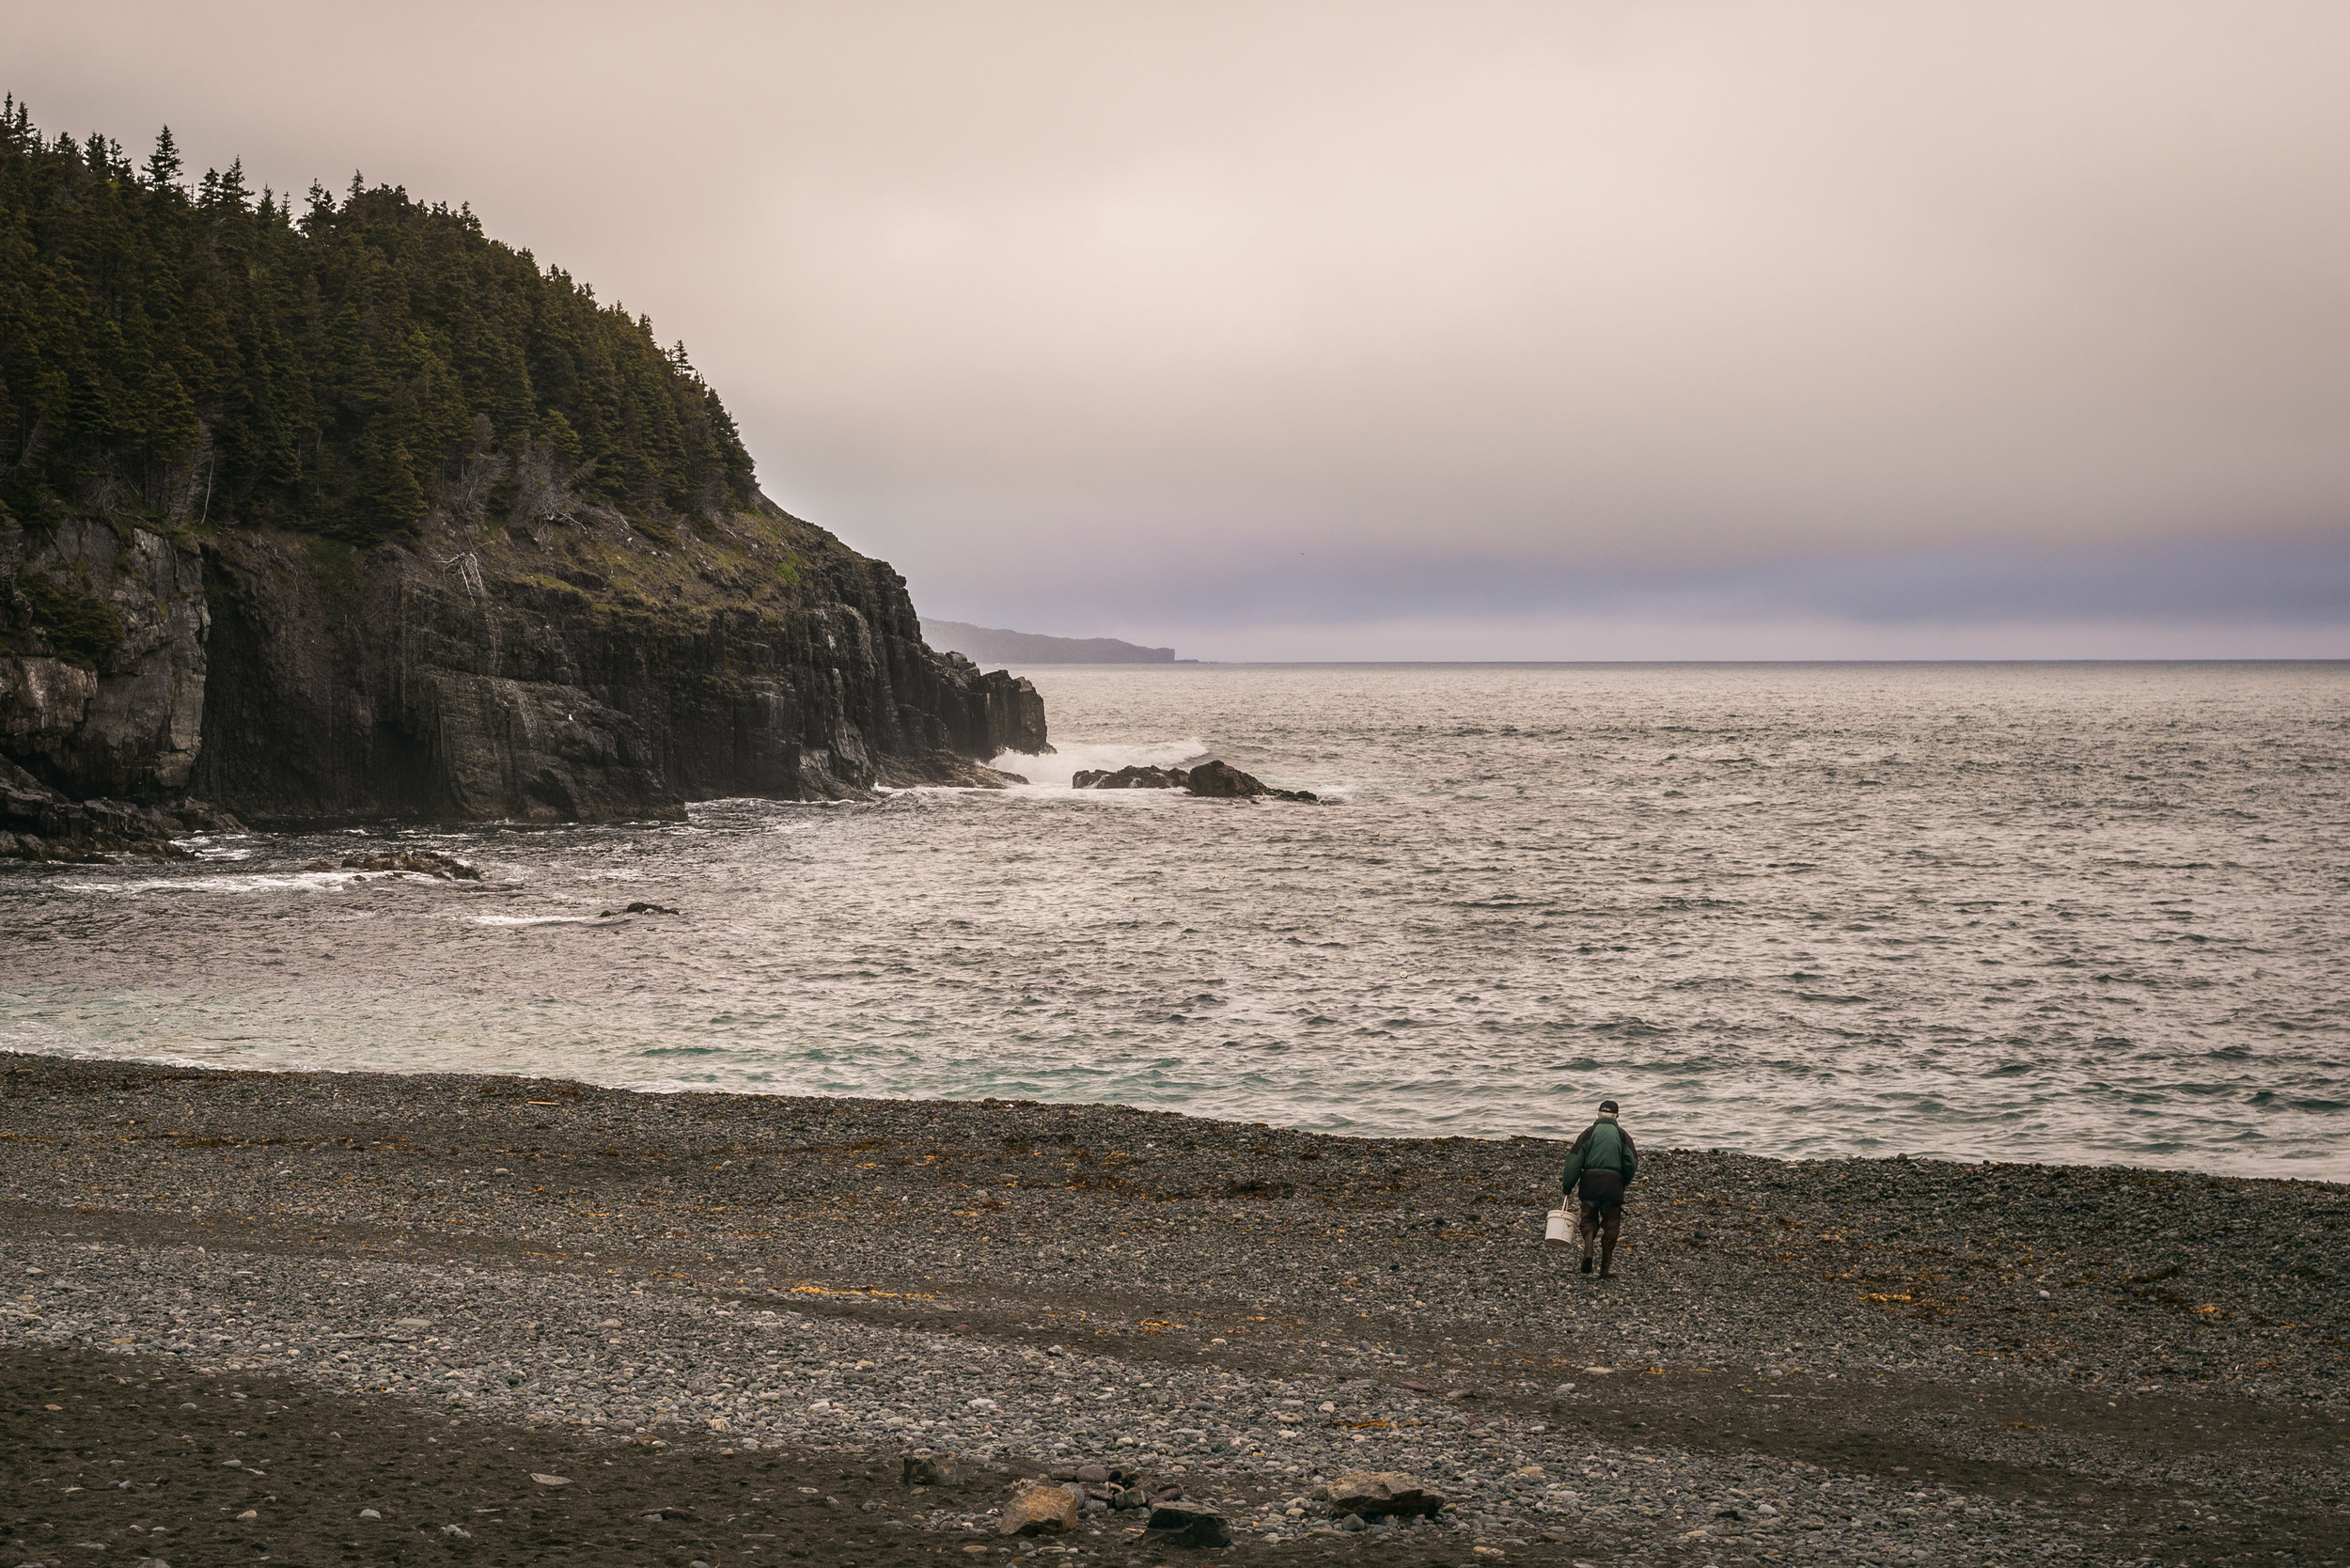 A lone skipper looking for capelin.